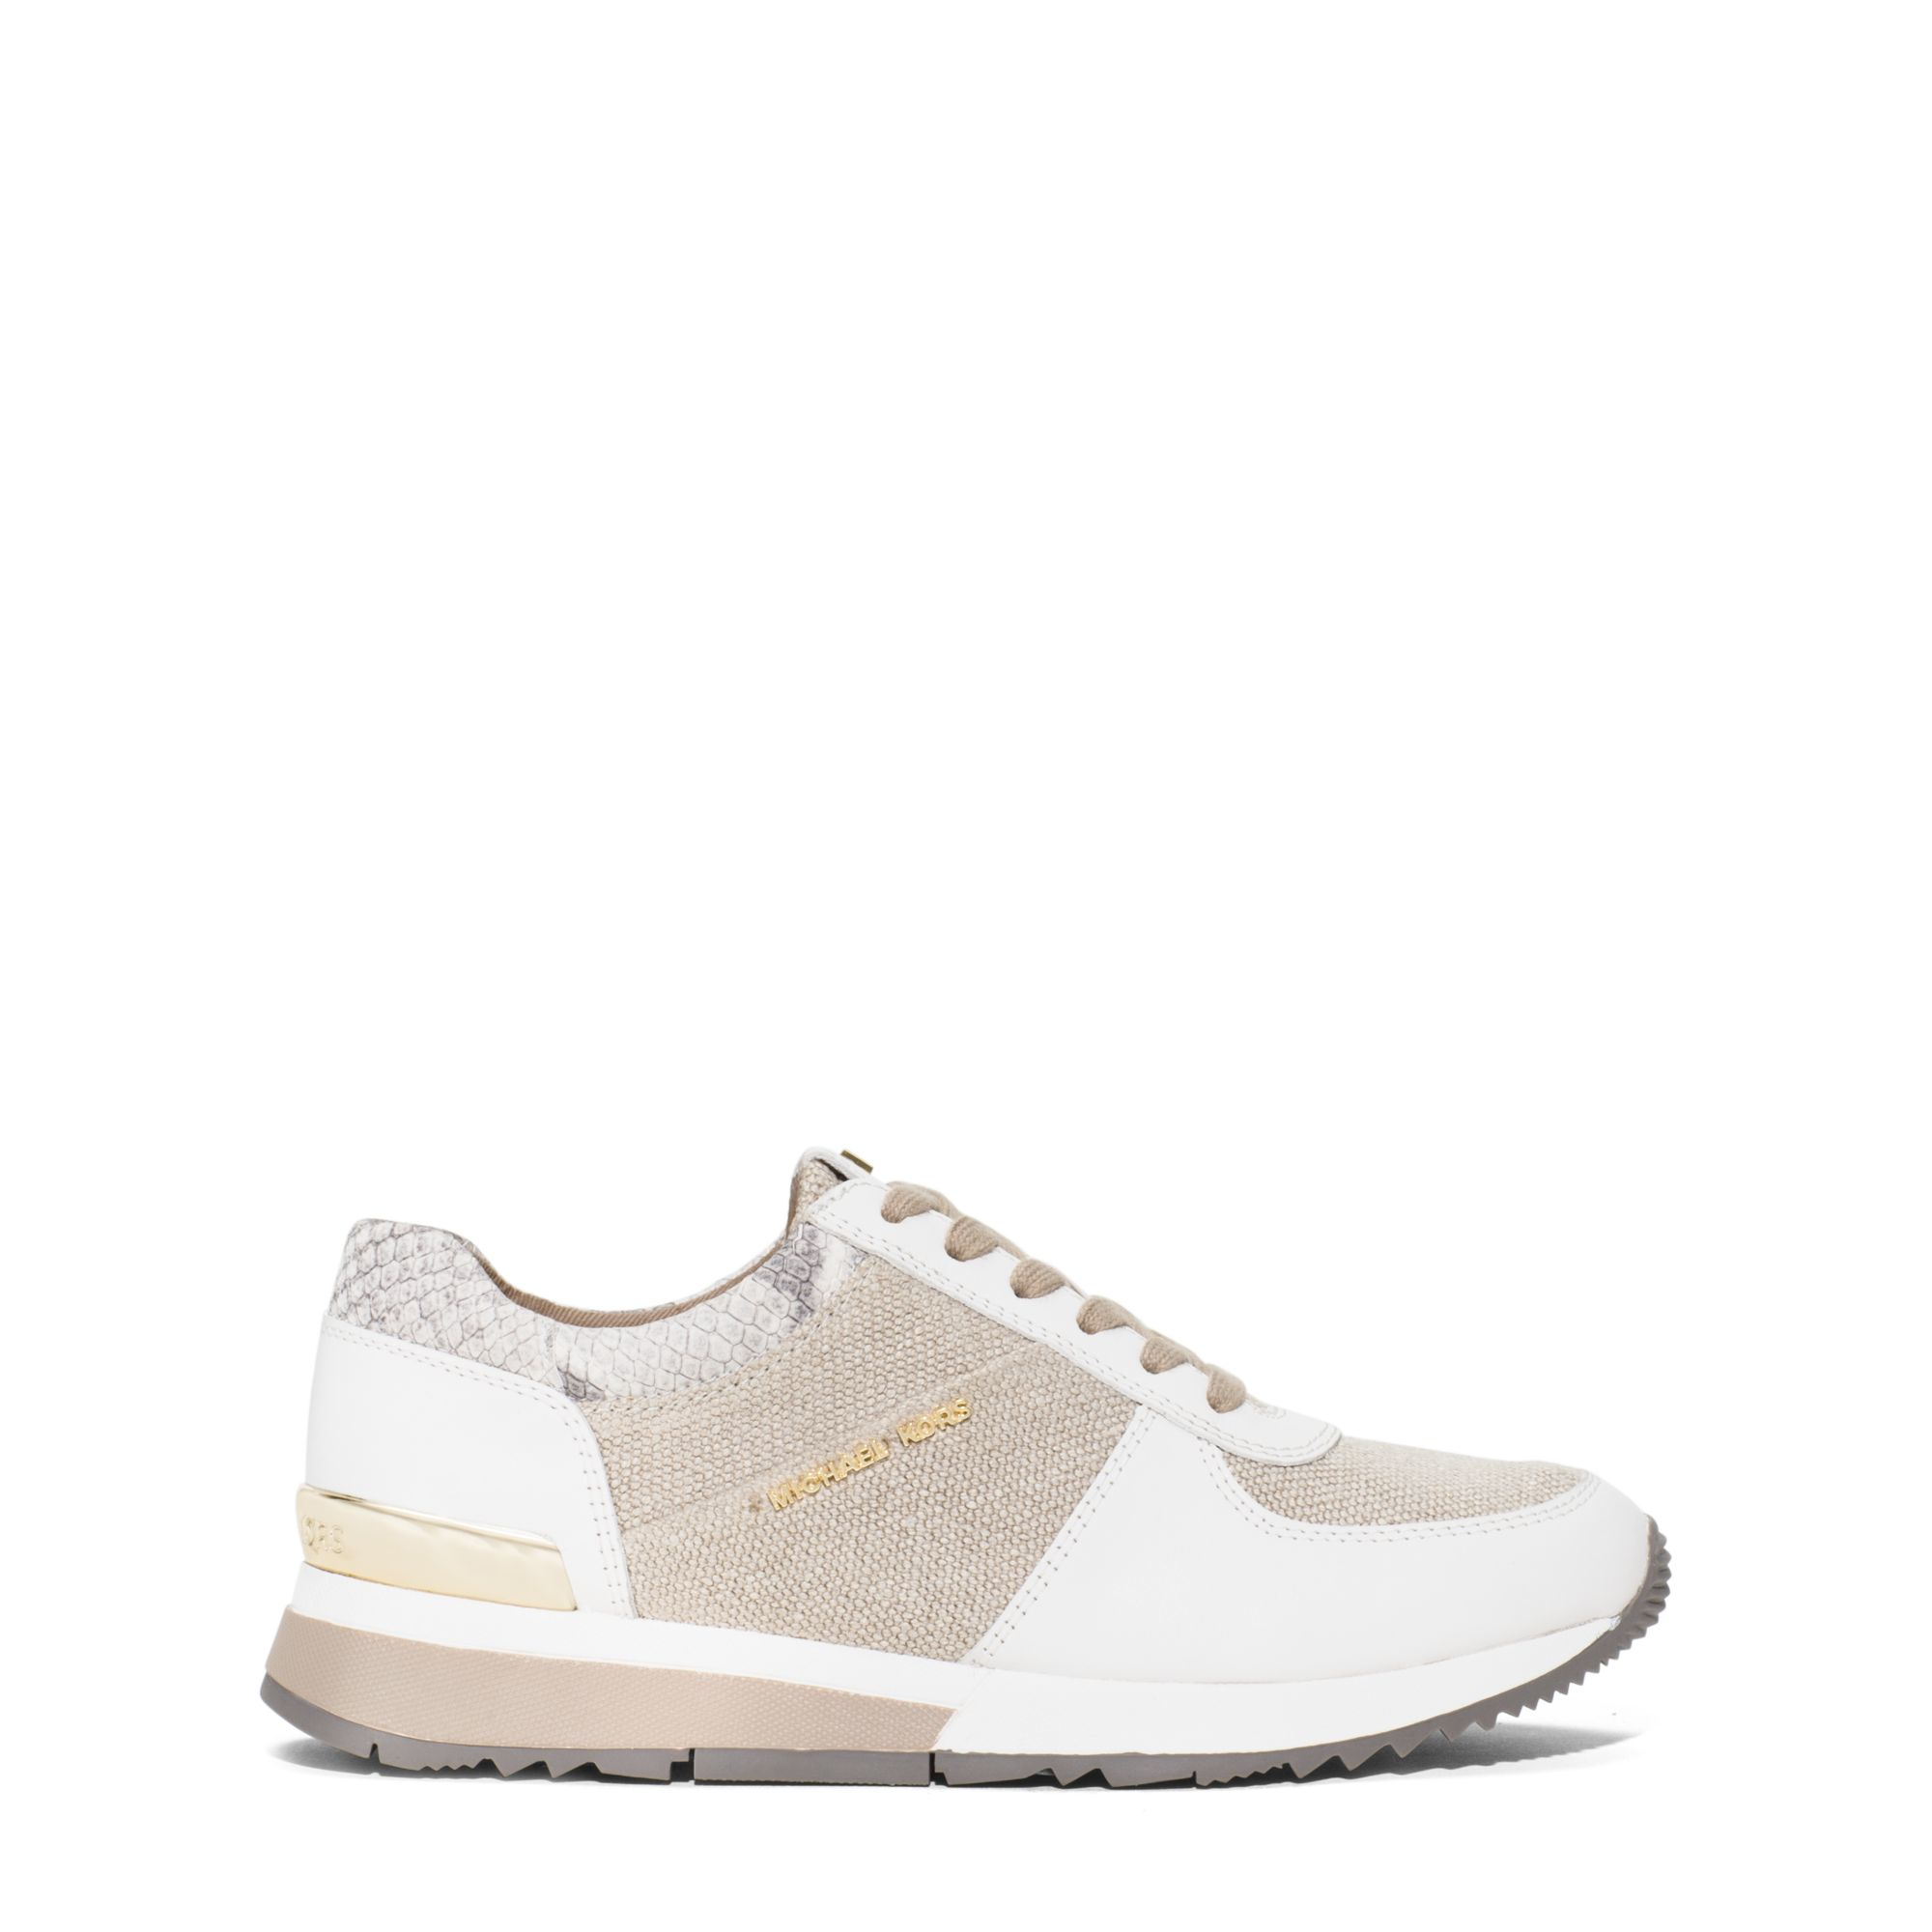 0189587a1d2bd Lyst - Michael Kors Allie Hemp And Leather Sneaker in Natural